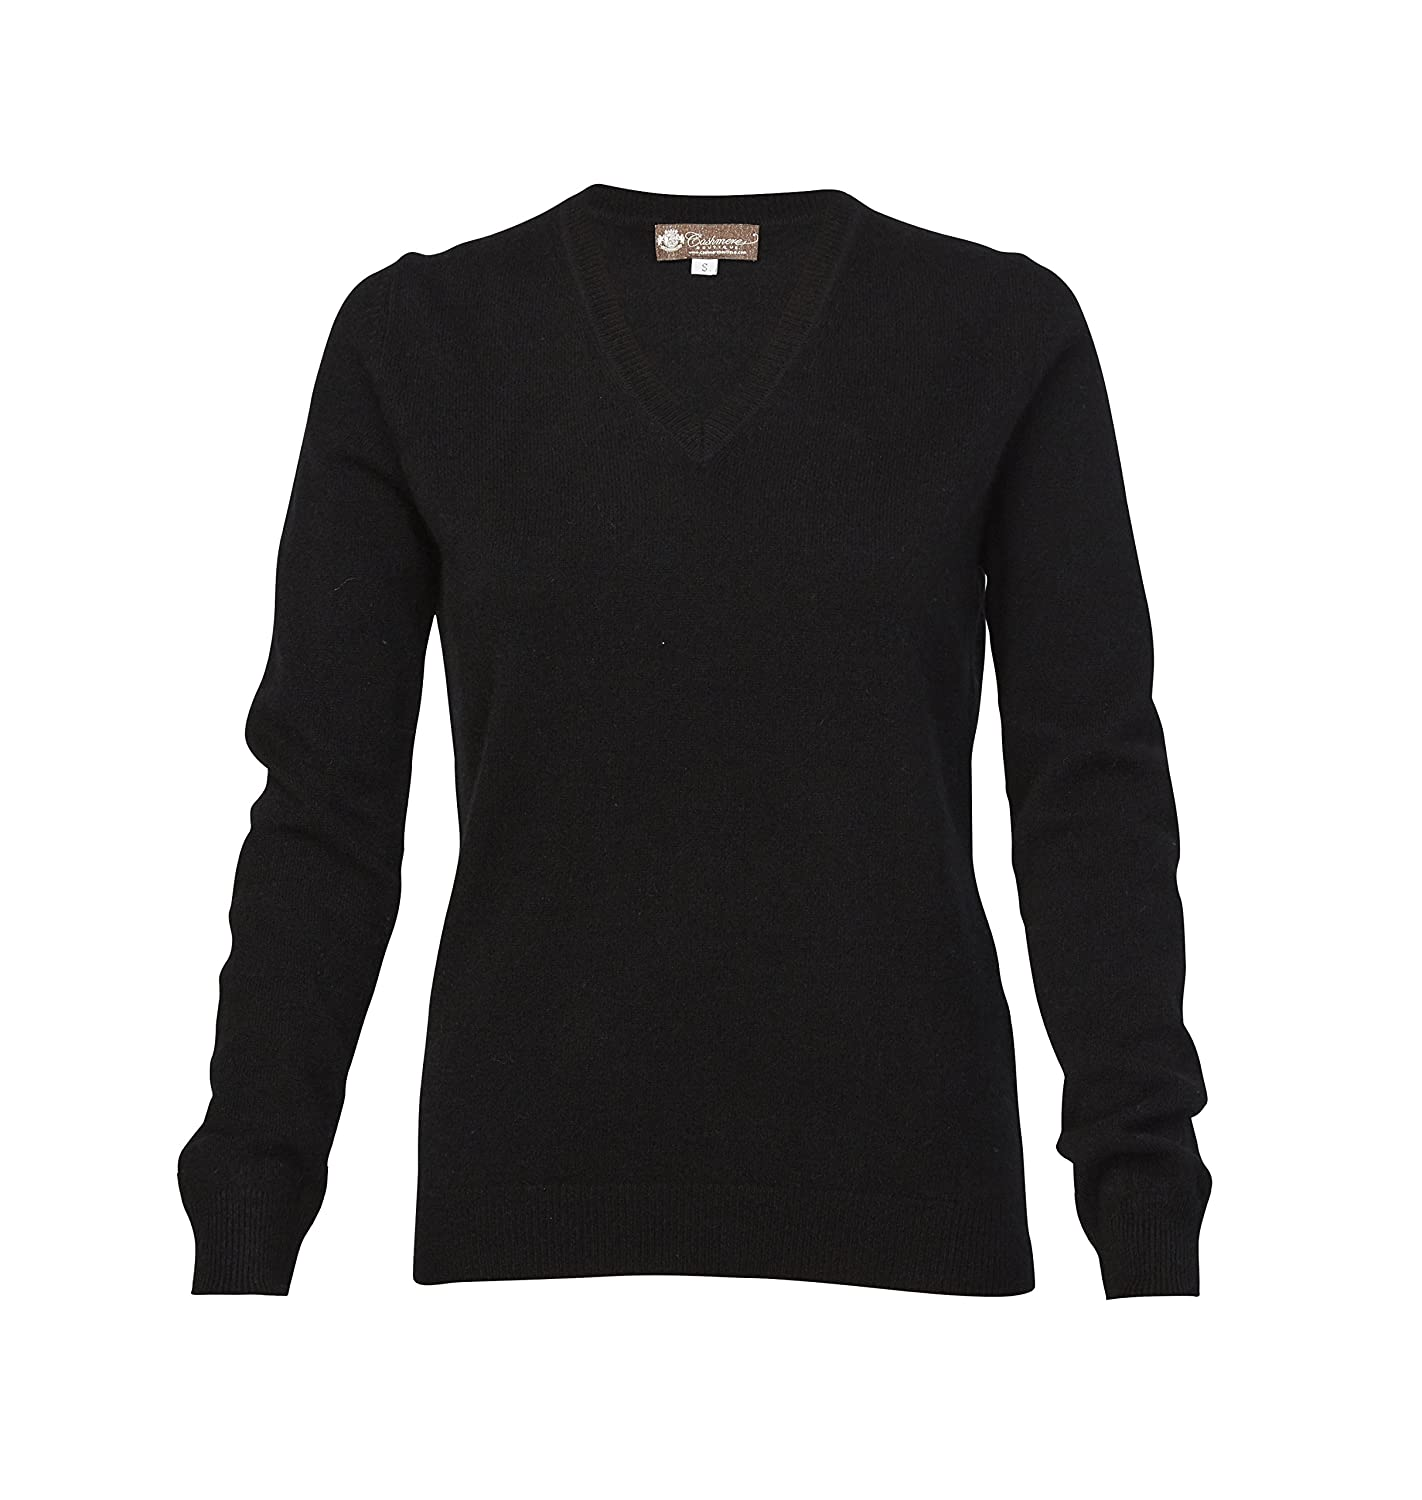 Women's Cashmere V-Neck Sweater at Amazon Women's Clothing store ...